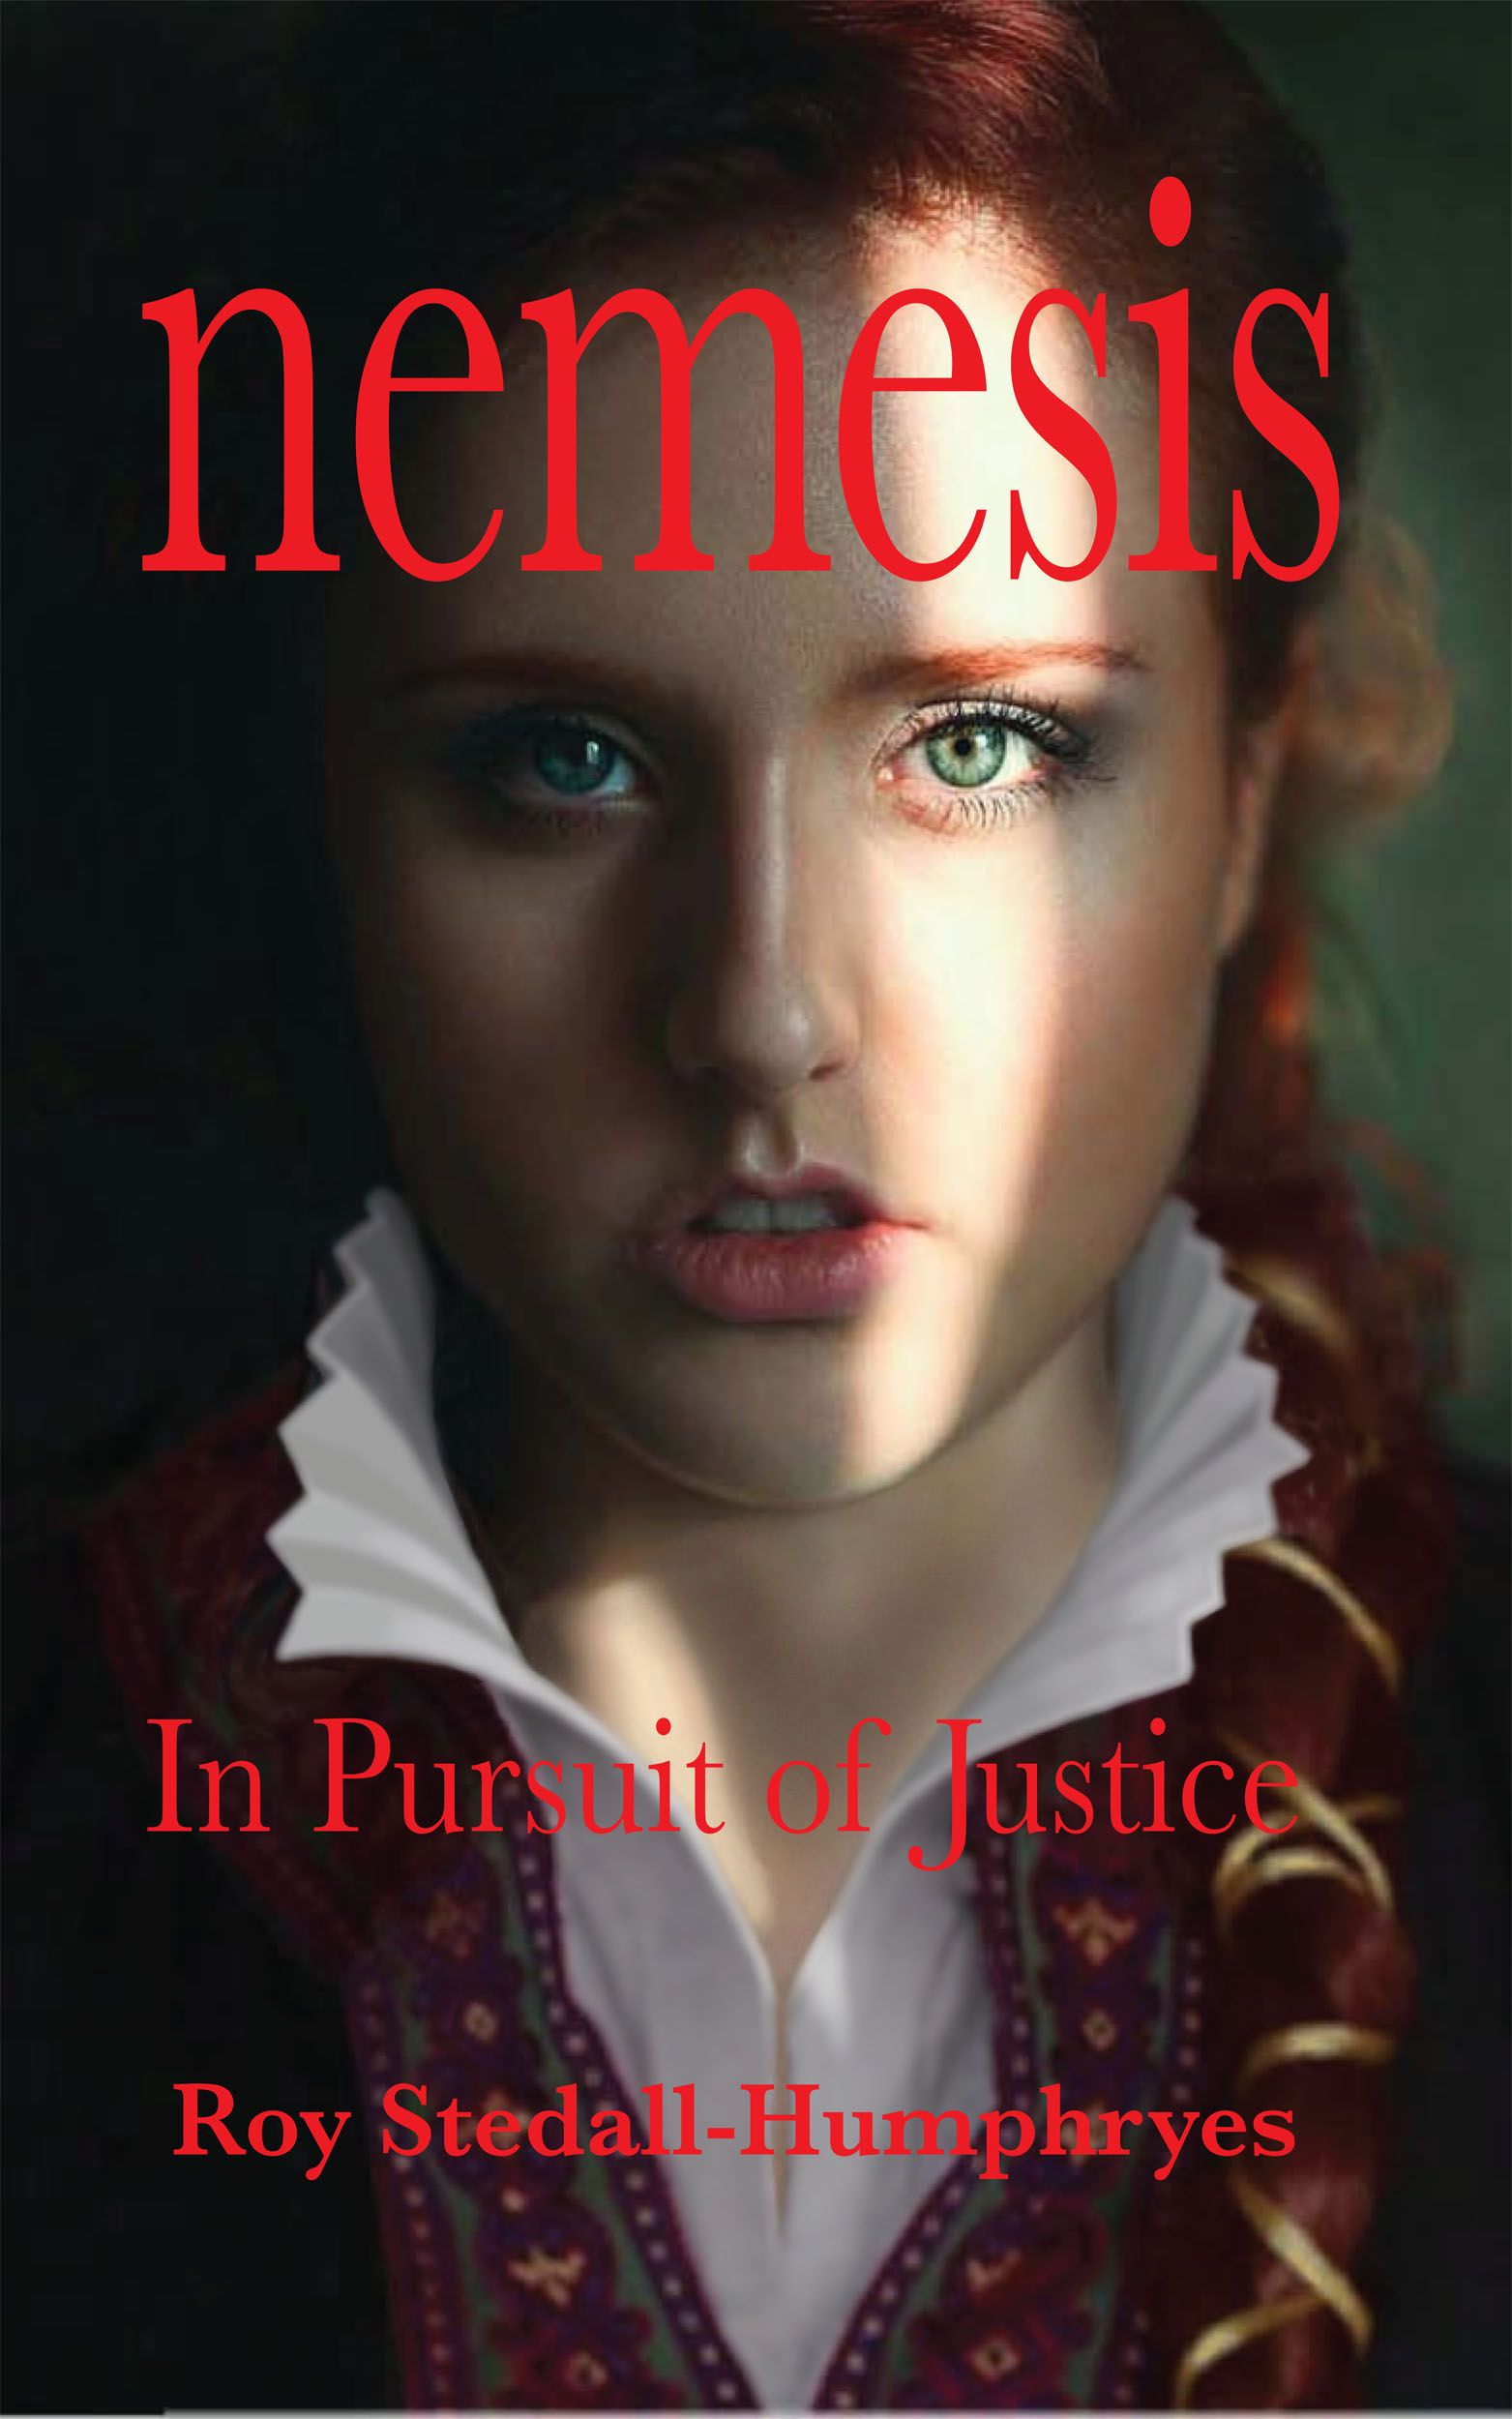 Isabella, a 12th c woman of her time. She seeks justice, nothing will stop her until she has exacted retribution.